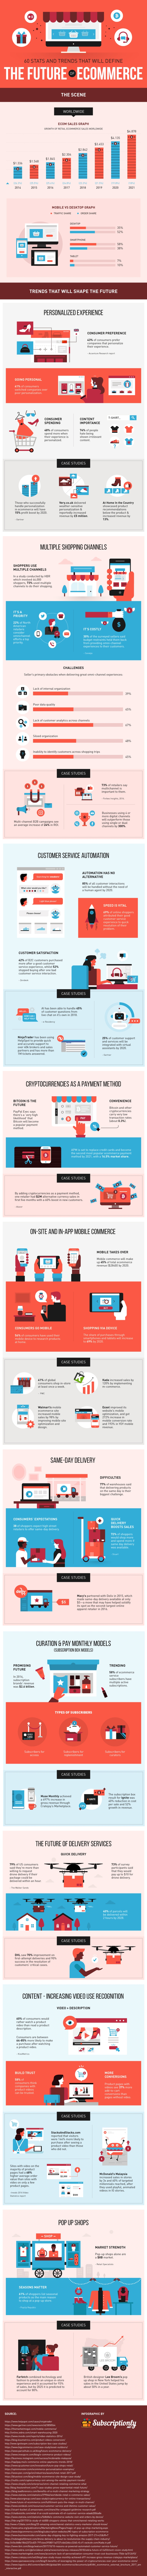 future-of-ecommerce-0607